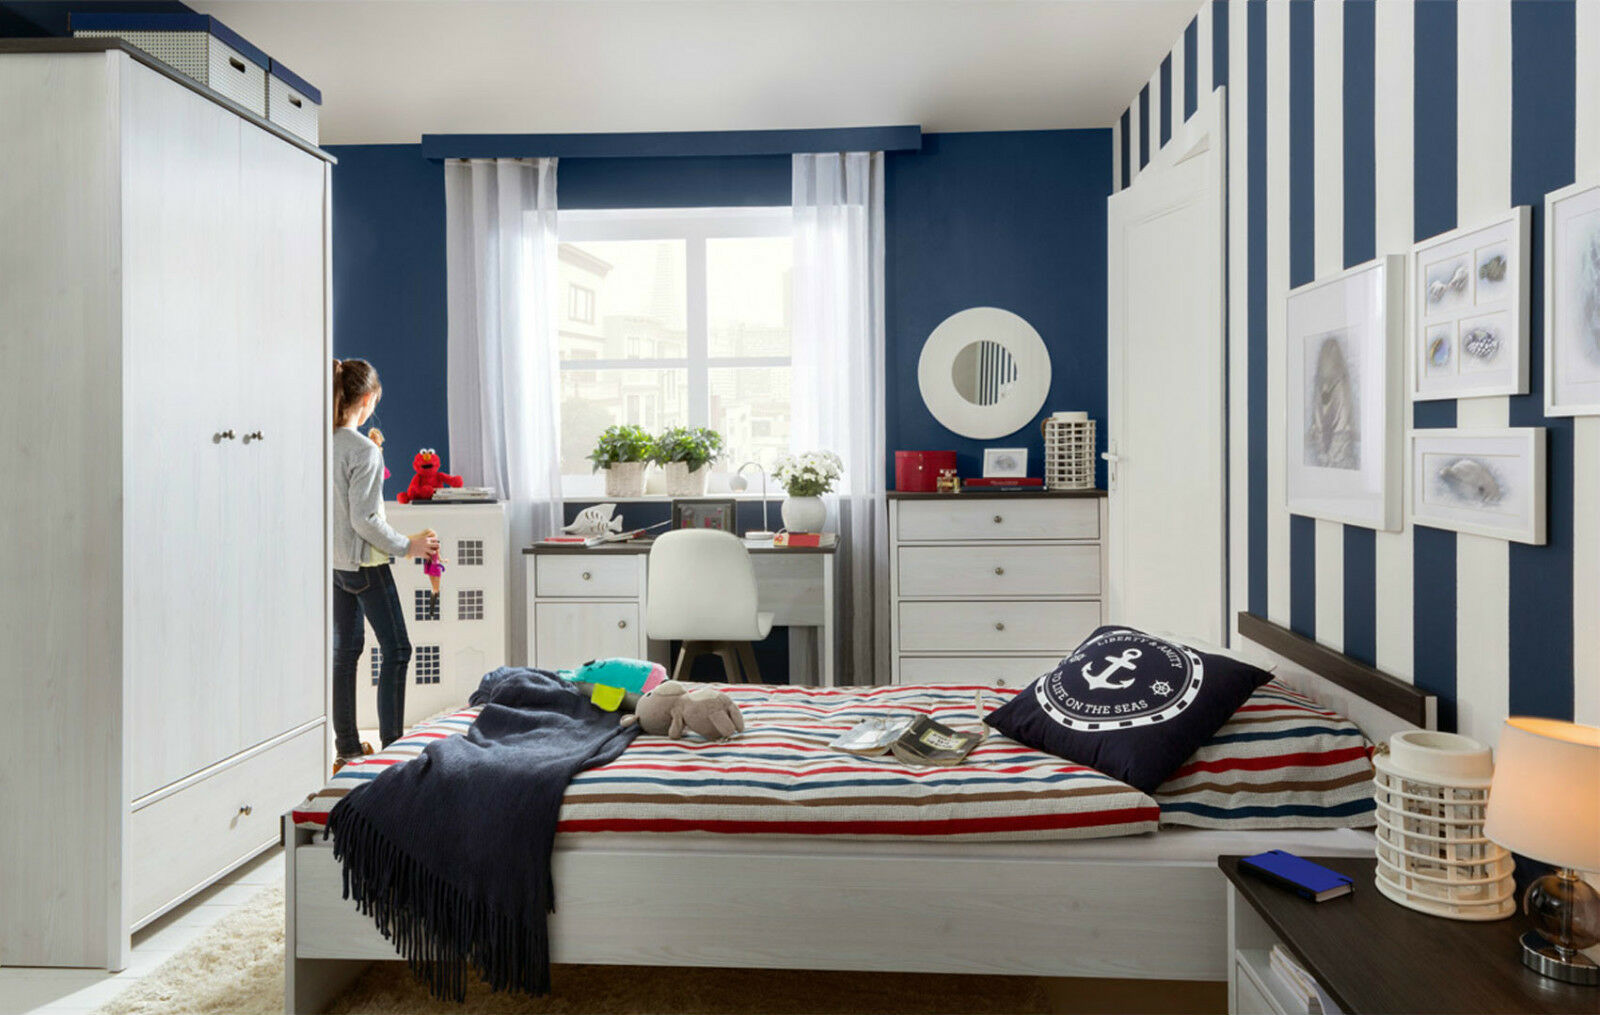 Details About Children S Bedroom Furniture Set 3 Items White Washed Nautical Coastal Shabby Pr